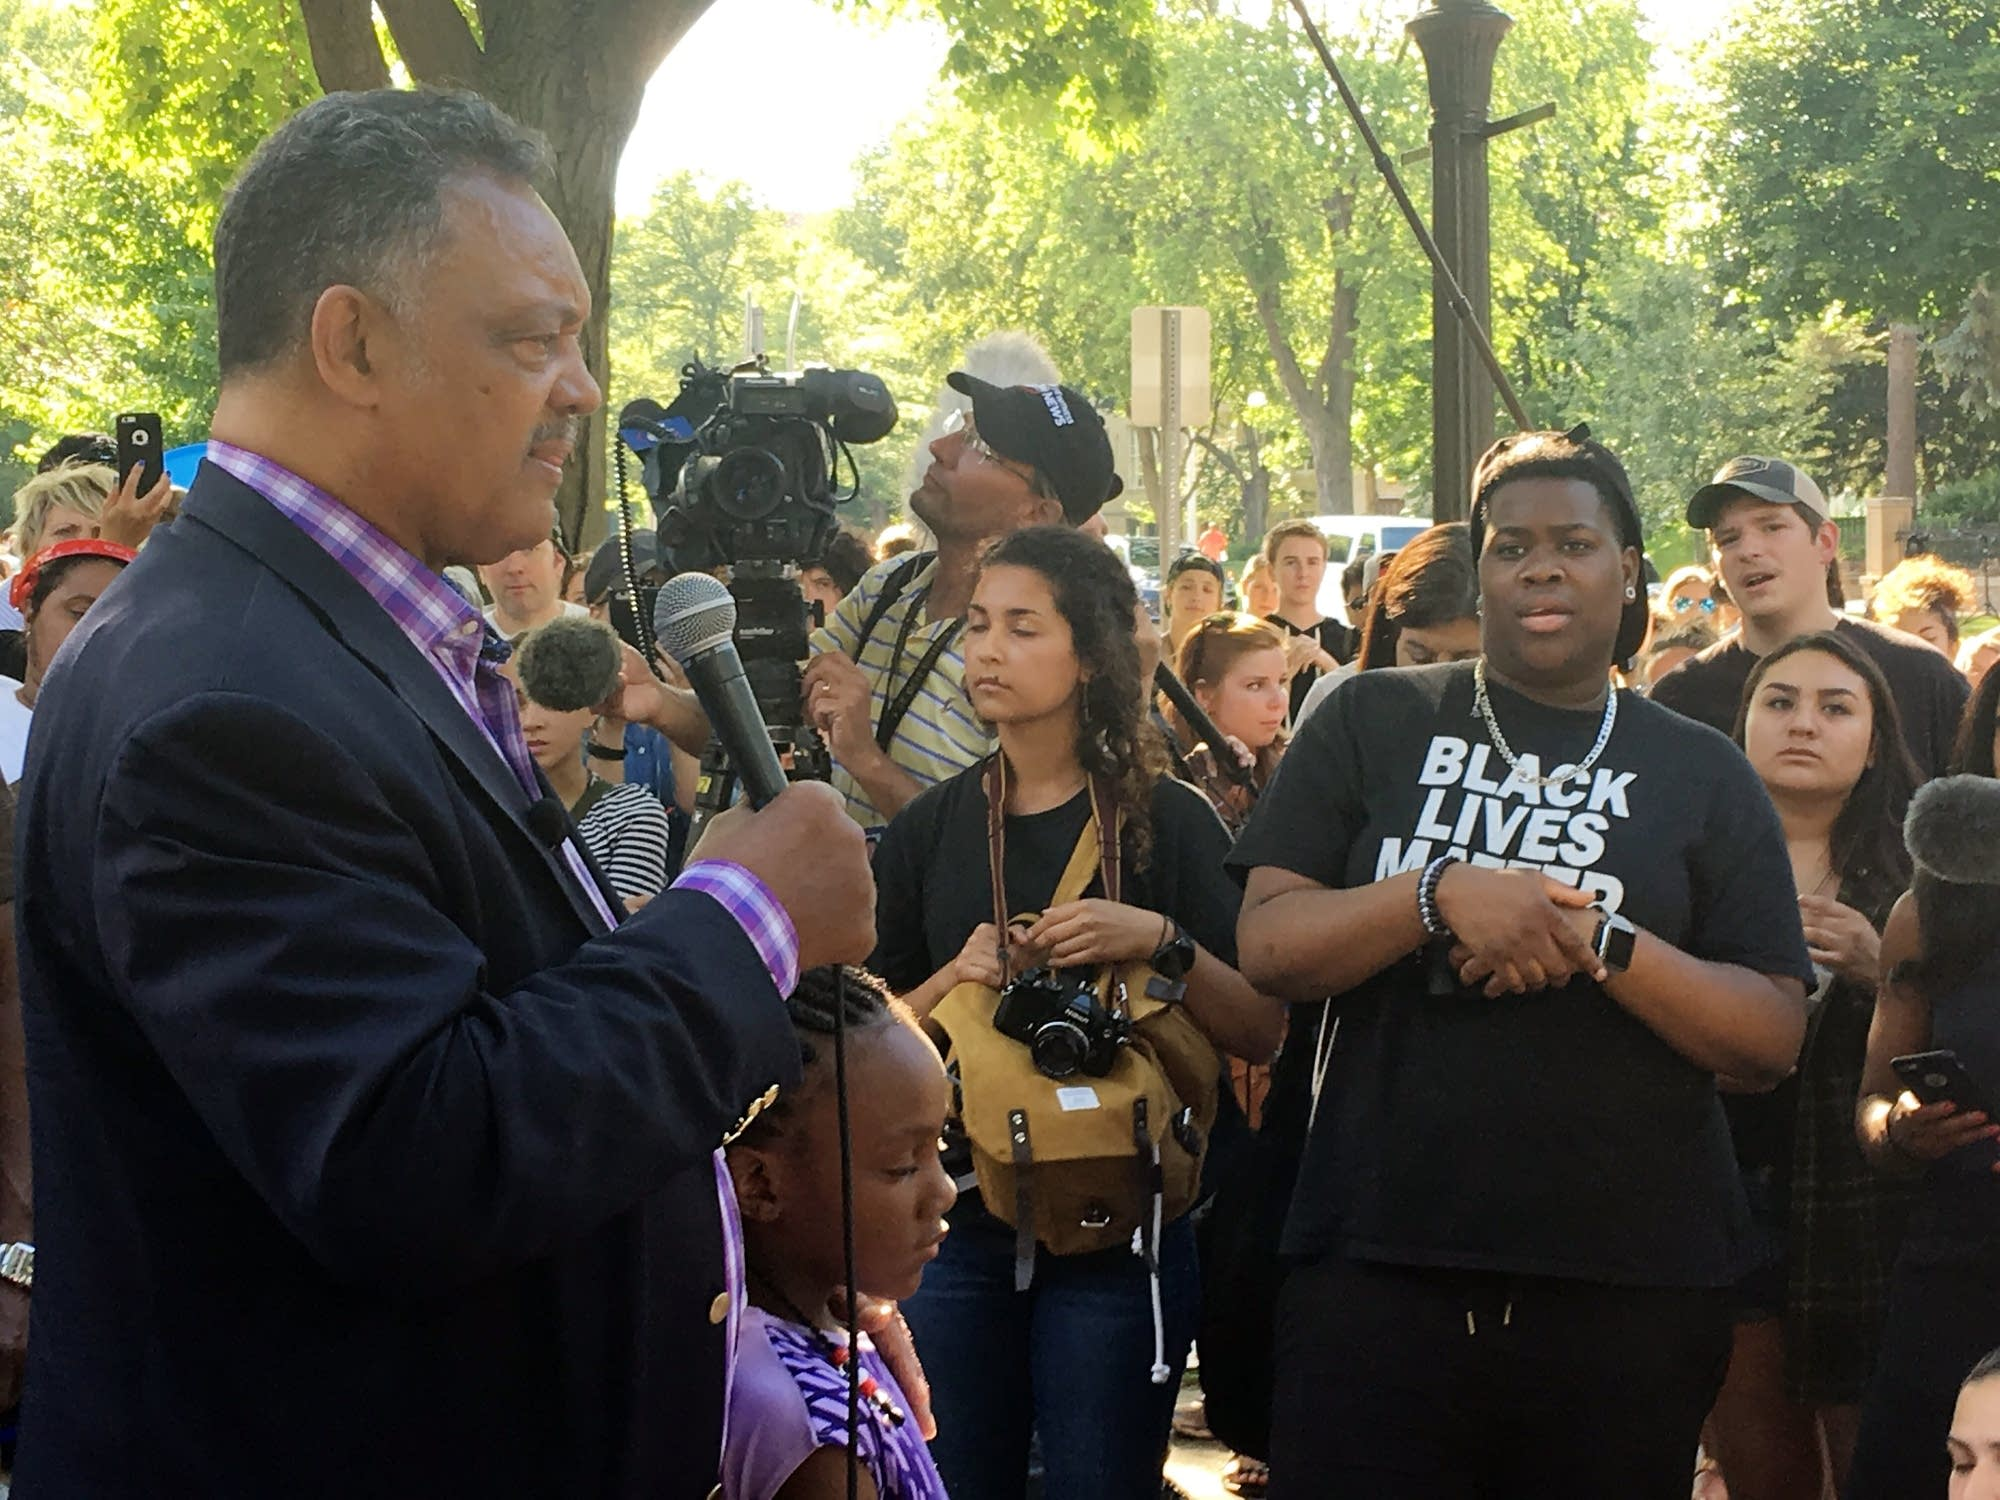 The Rev. Jesse Jackson speaks with protesters.